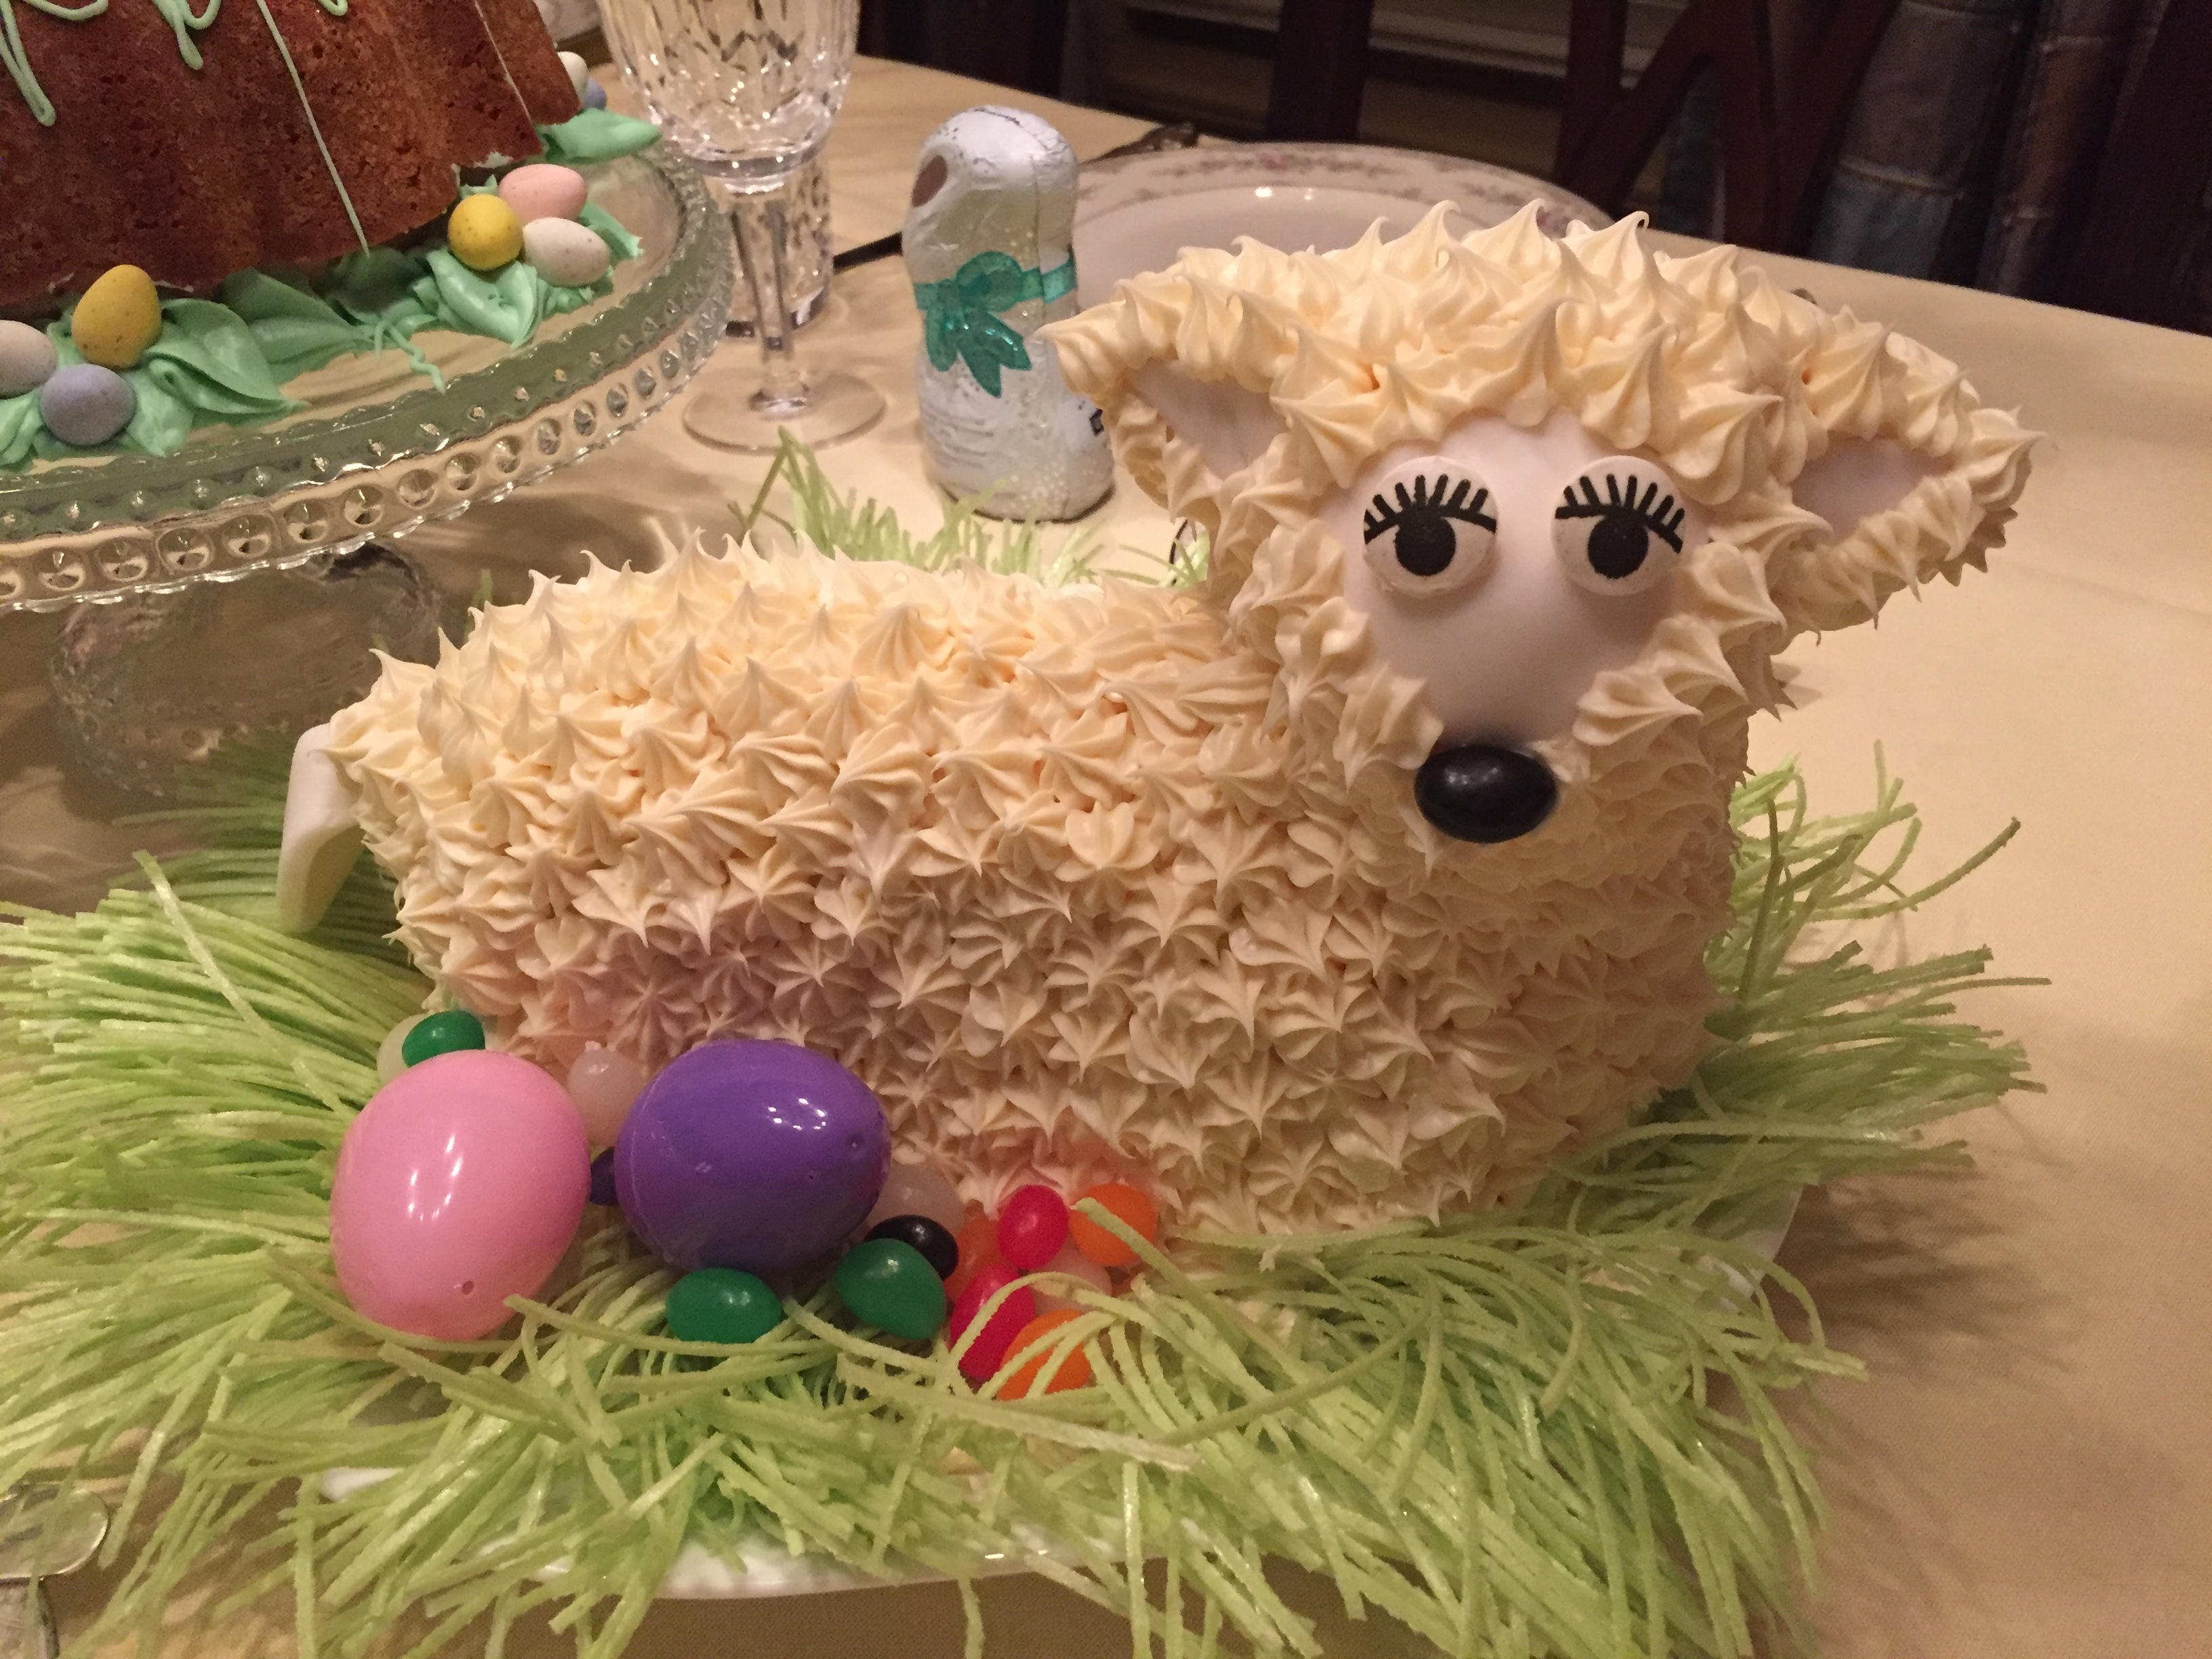 Reader's Easter Lamb Cake Gallery for 2016 – With Giveaway Winners ...